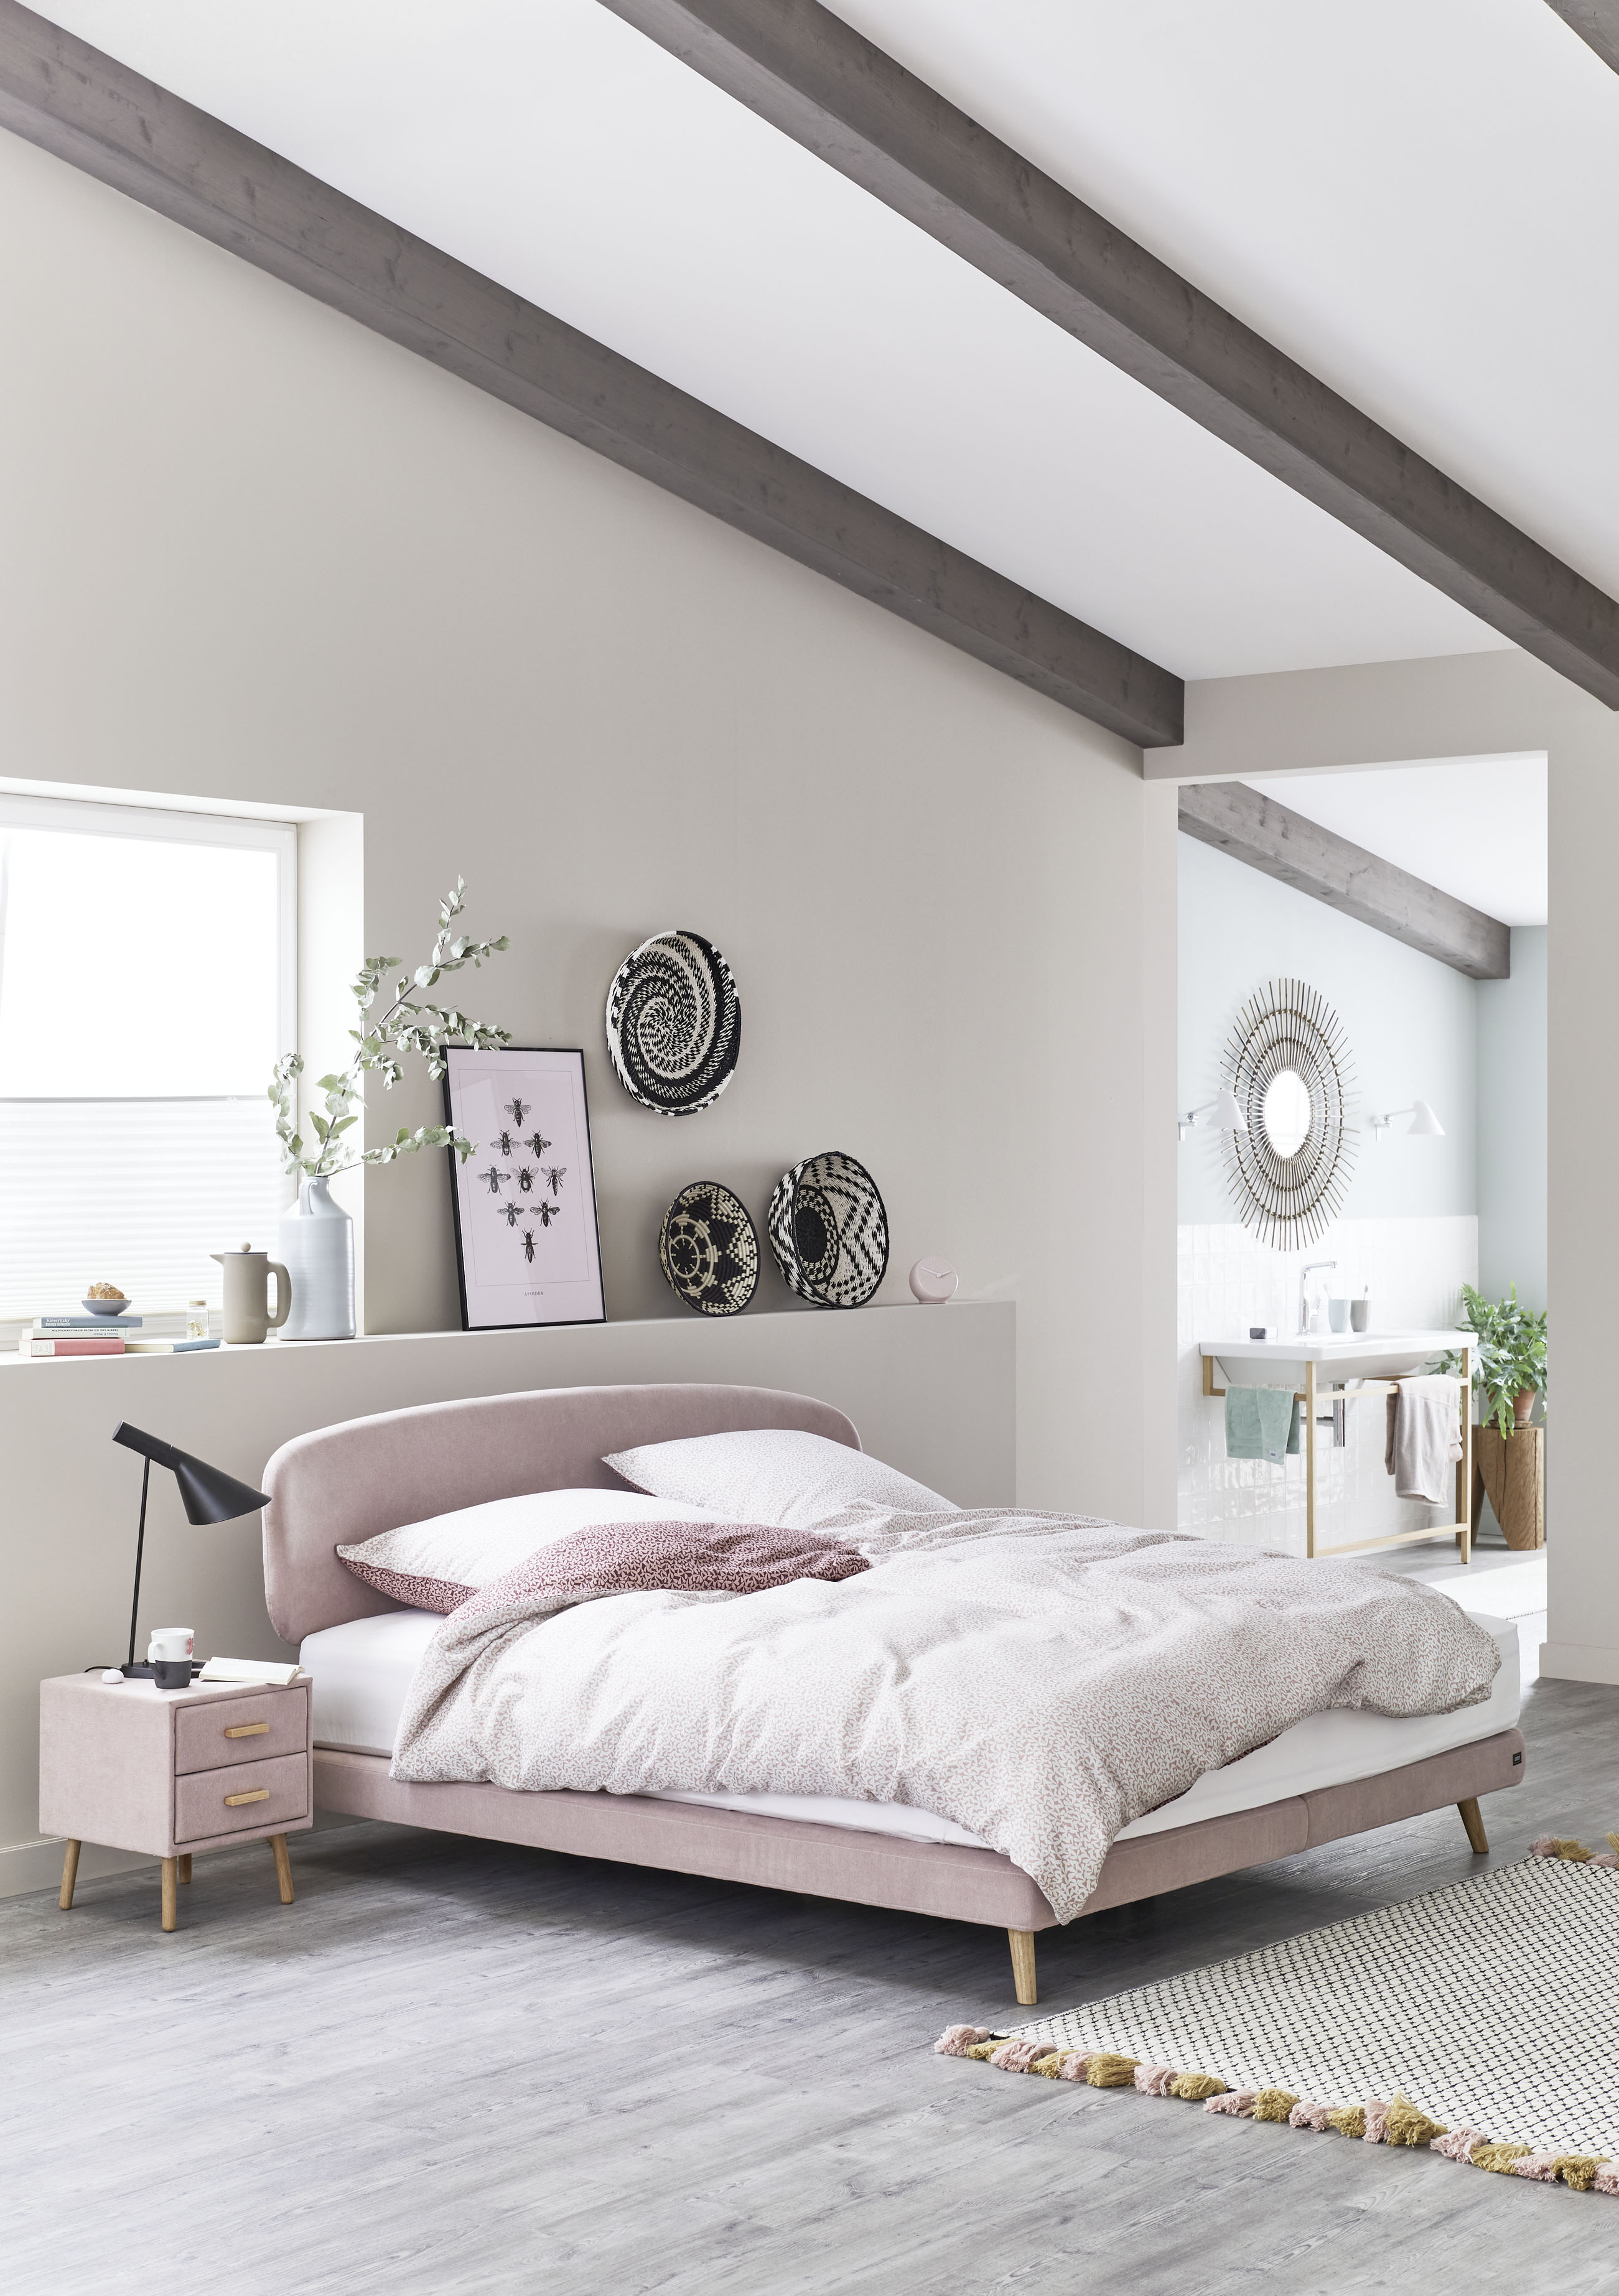 The bedroom, with current furniture from the assortment of the